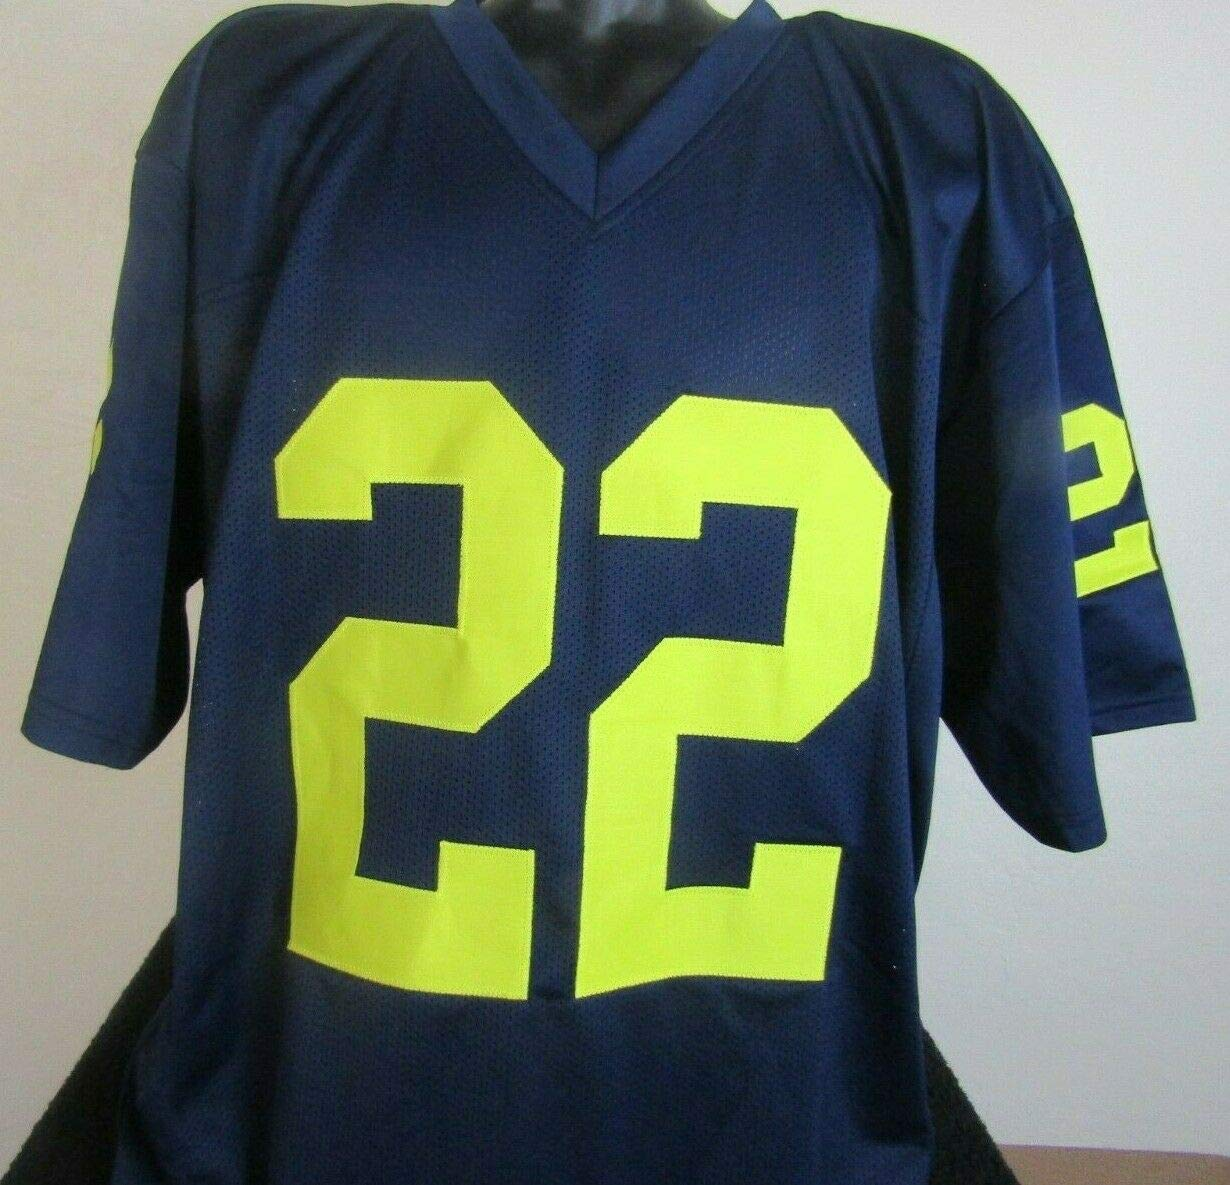 finest selection 23821 22e32 Amazon.com: Ty Law Signed Autographed Michigan Wolverines ...